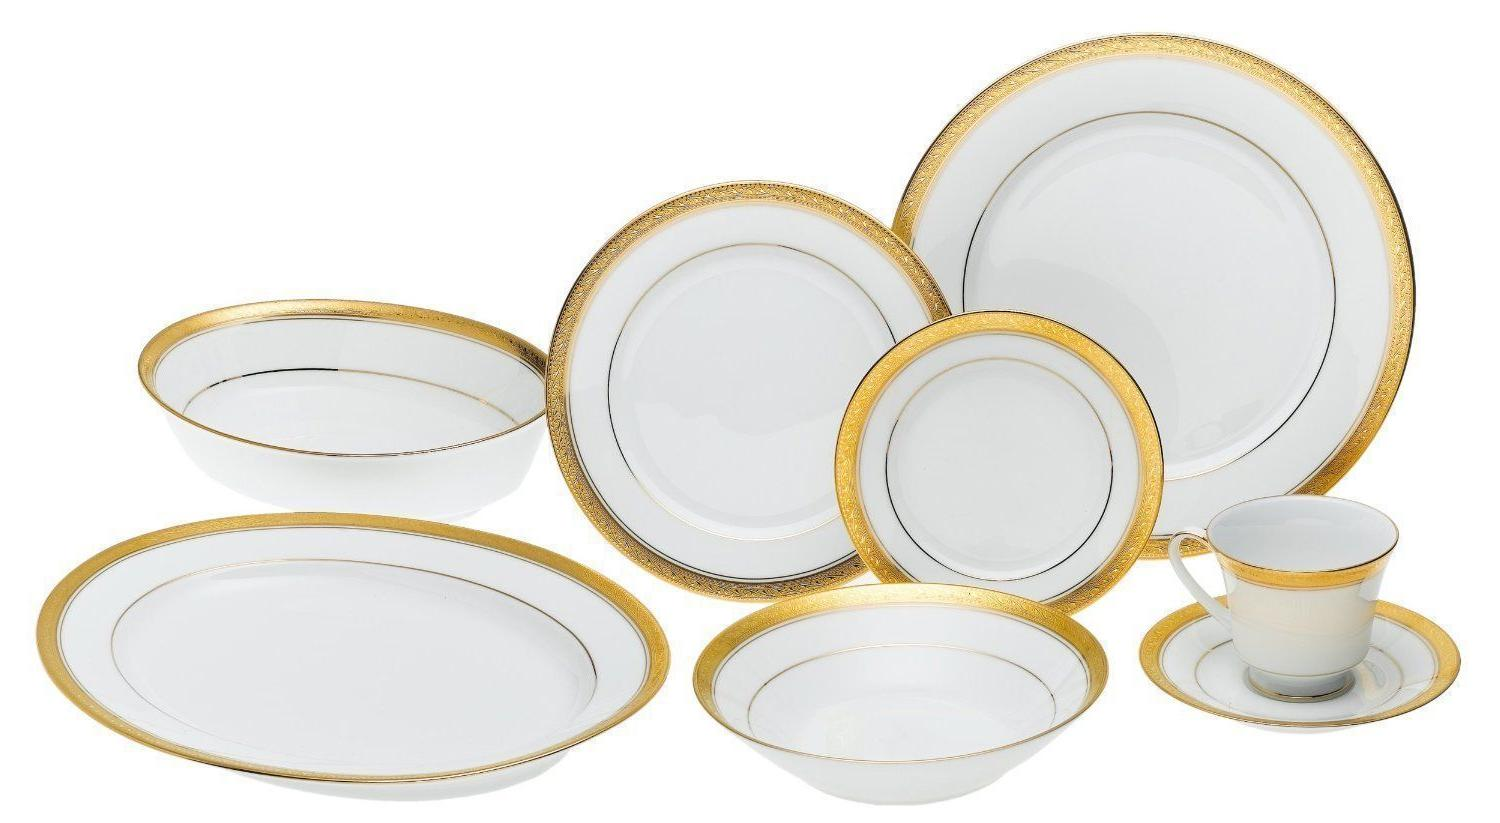 Noritake Crestwood Gold 50-piece Dinnerware for with Serve set